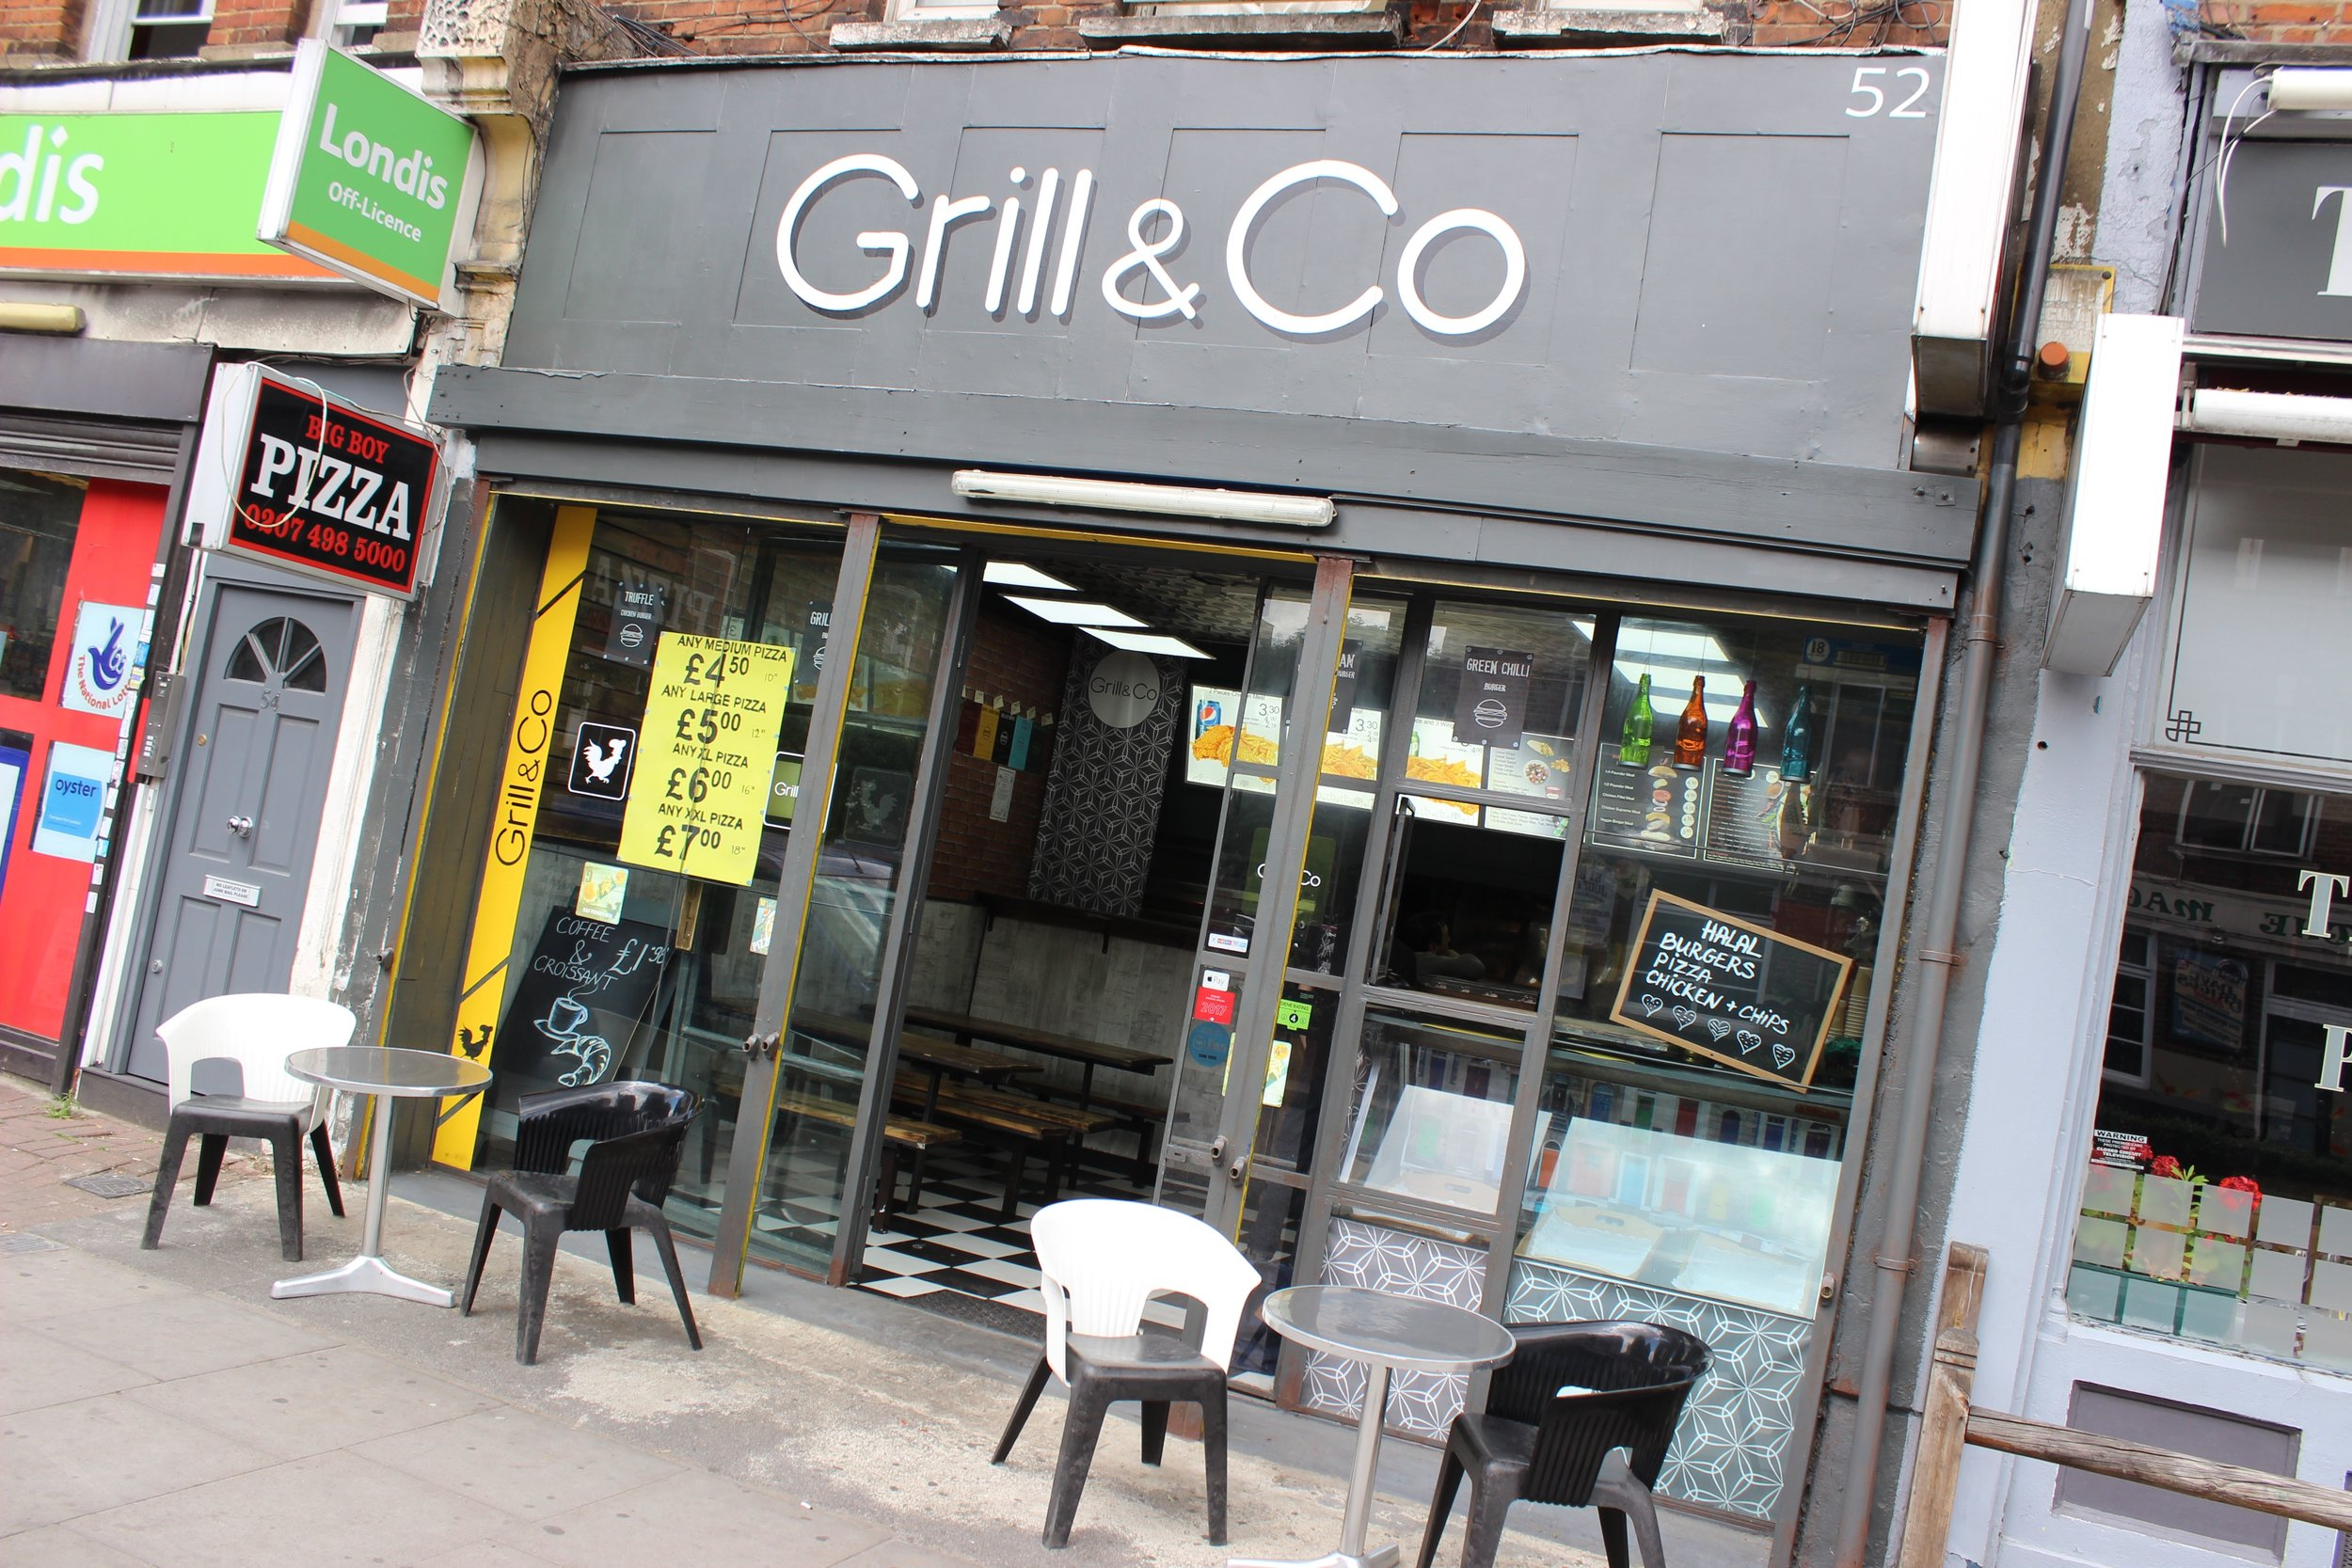 Grill & Co. Fast Food Takeaway in Battersea8.jpg